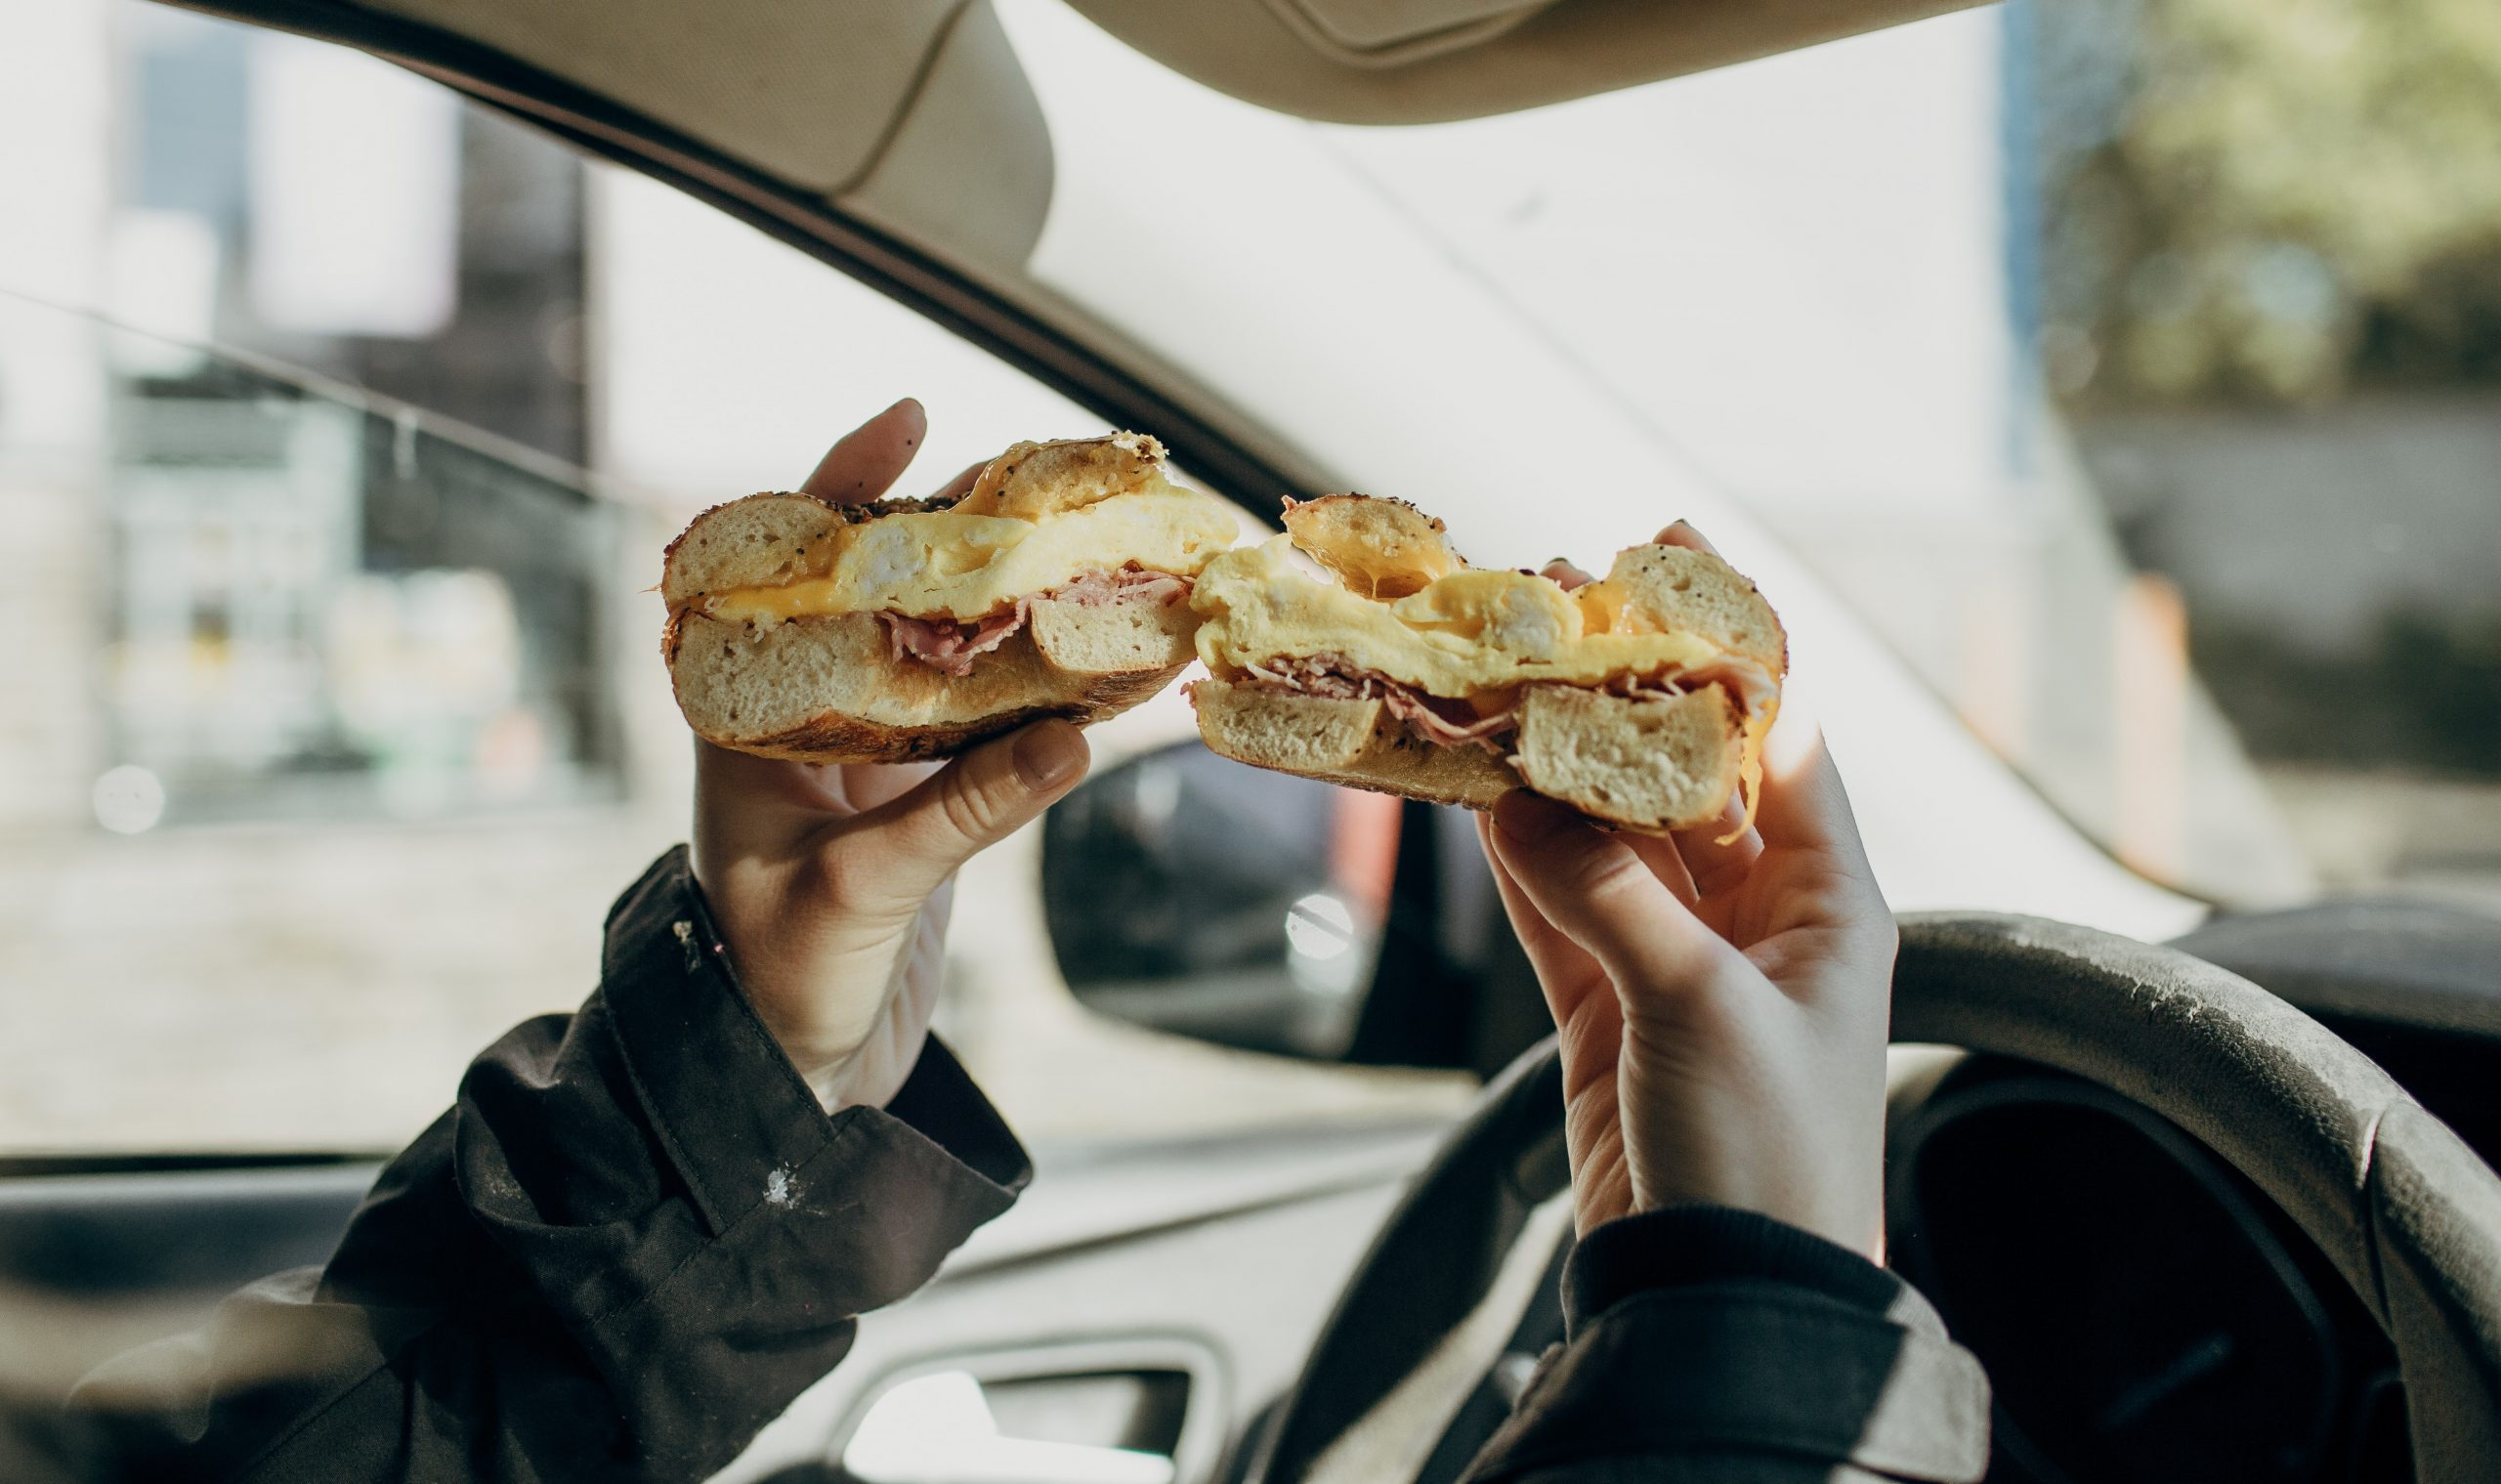 Don't Eat And Drive: The Shocking Truth About Road-Based Snacking